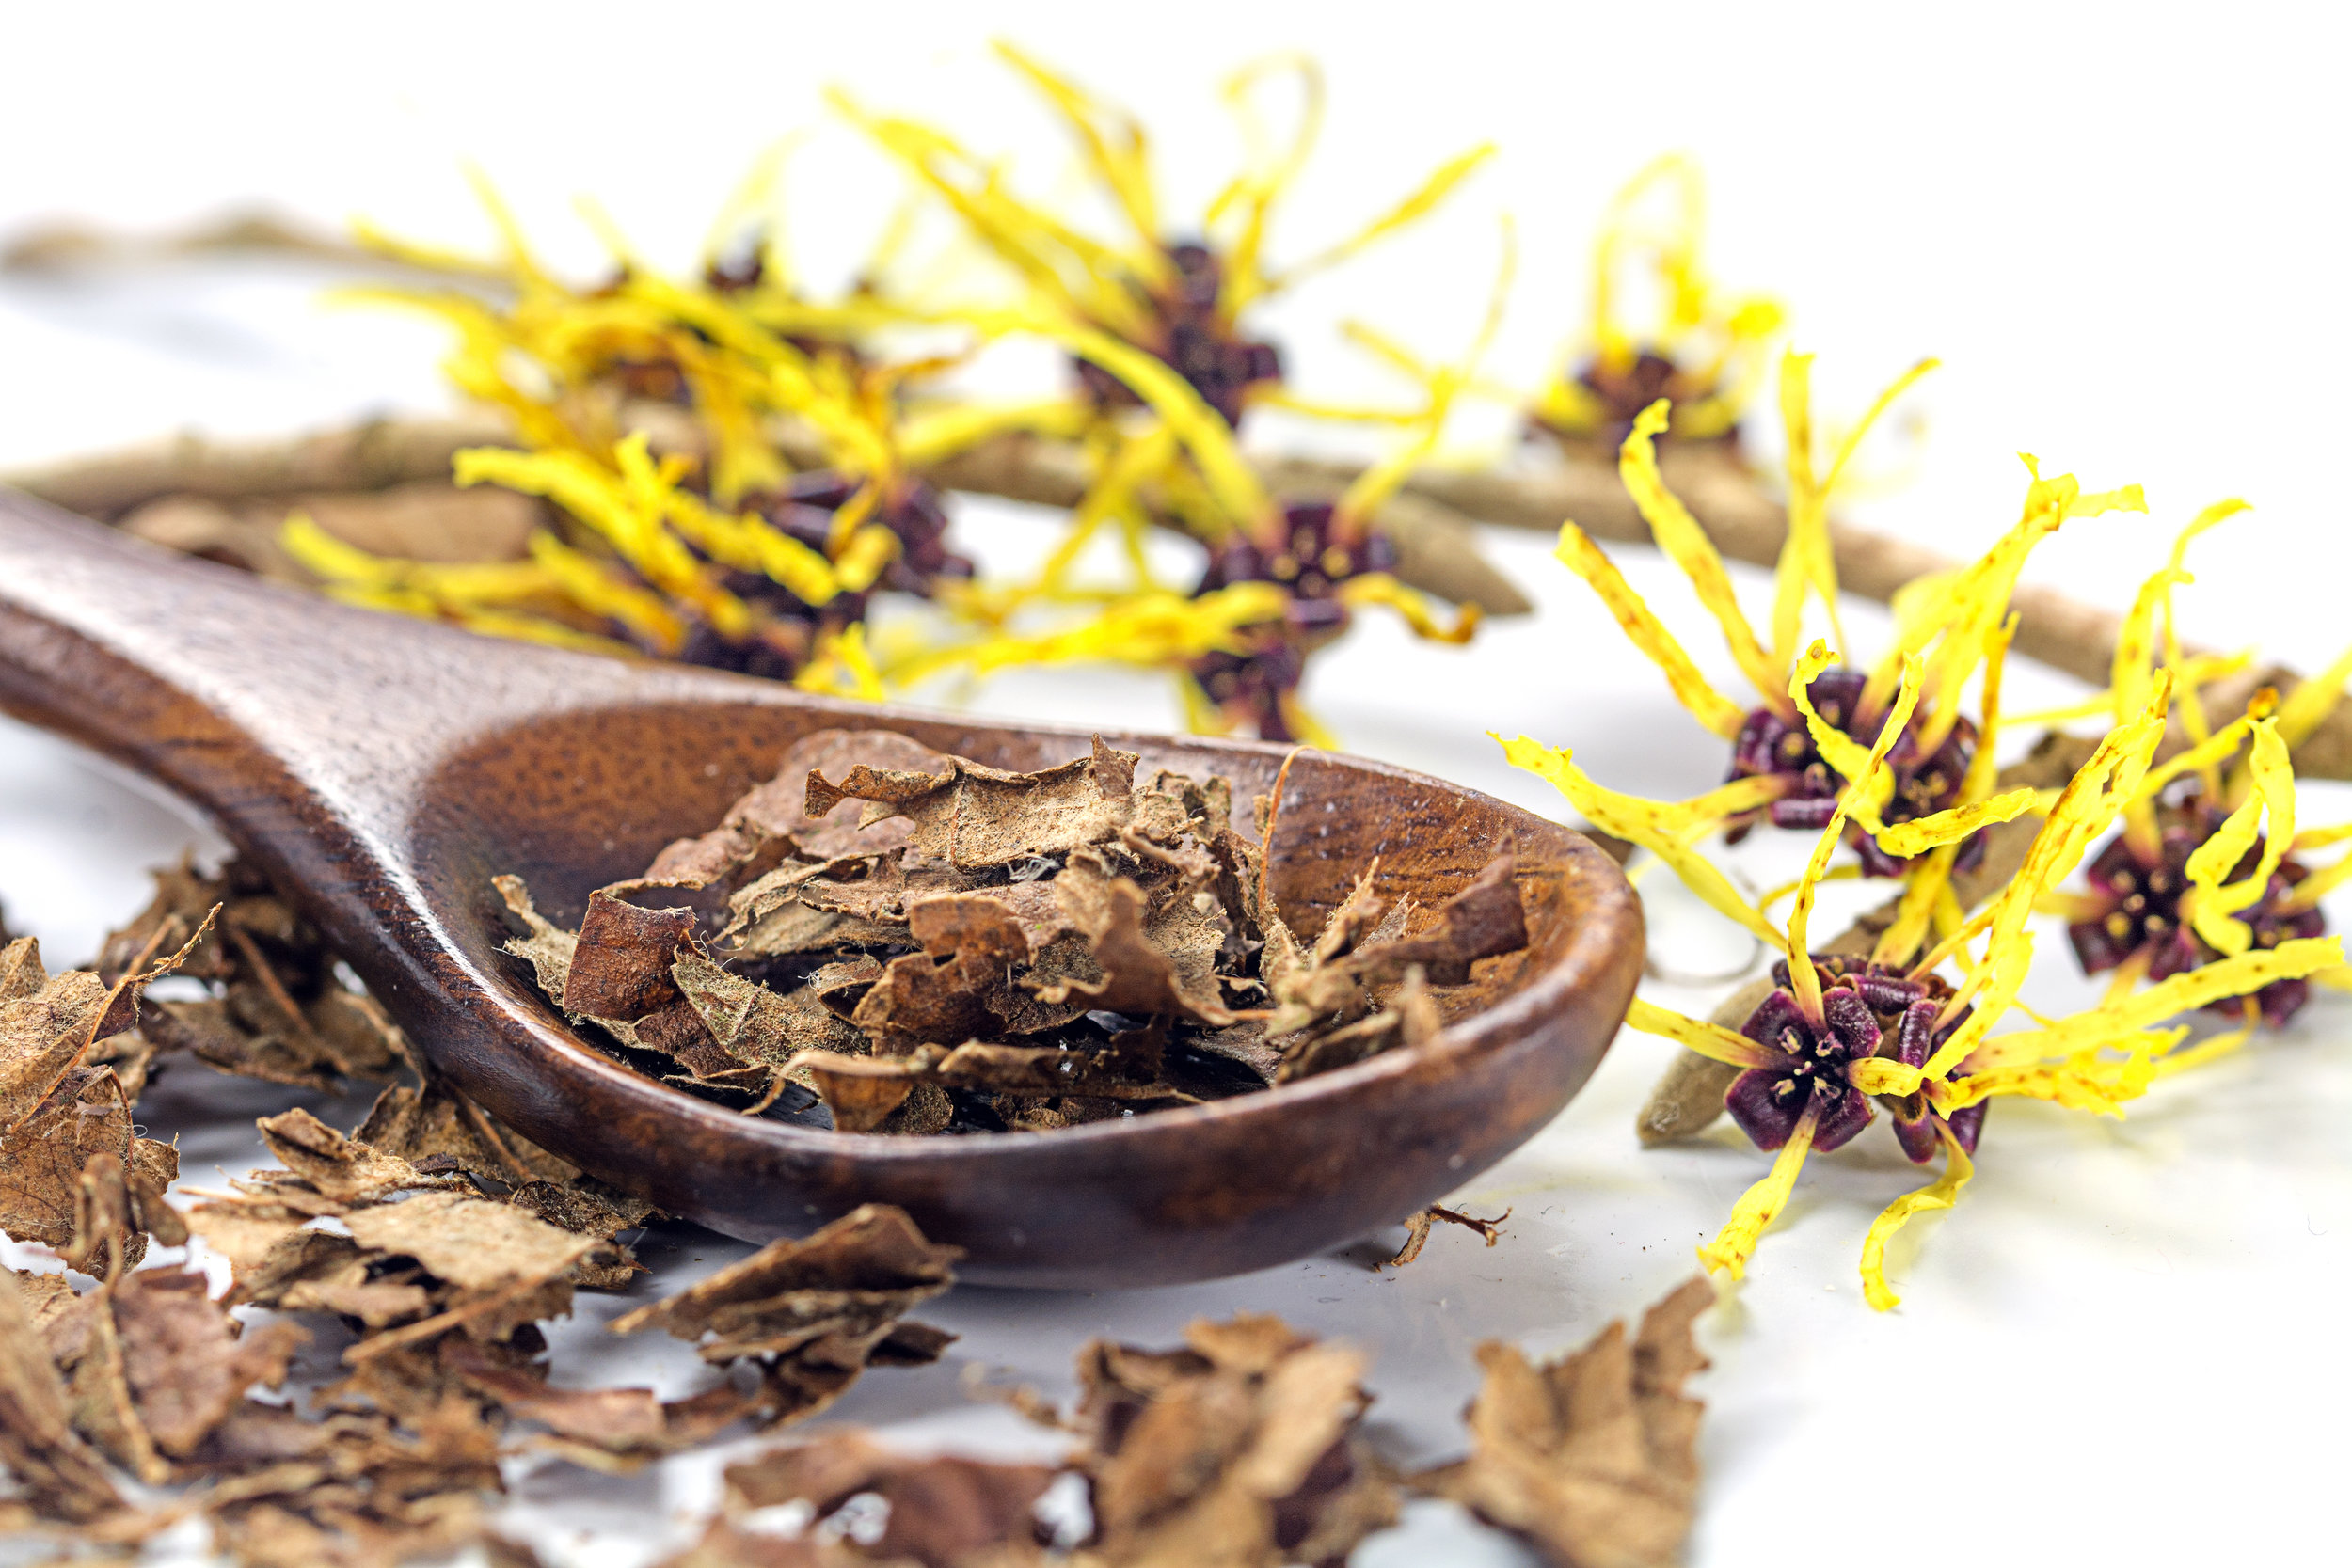 Witch Hazel - Witch hazel is rich in tannins, a natural plant compound with powerful antioxidant properties that can help protect your skin against damage when applied topically.